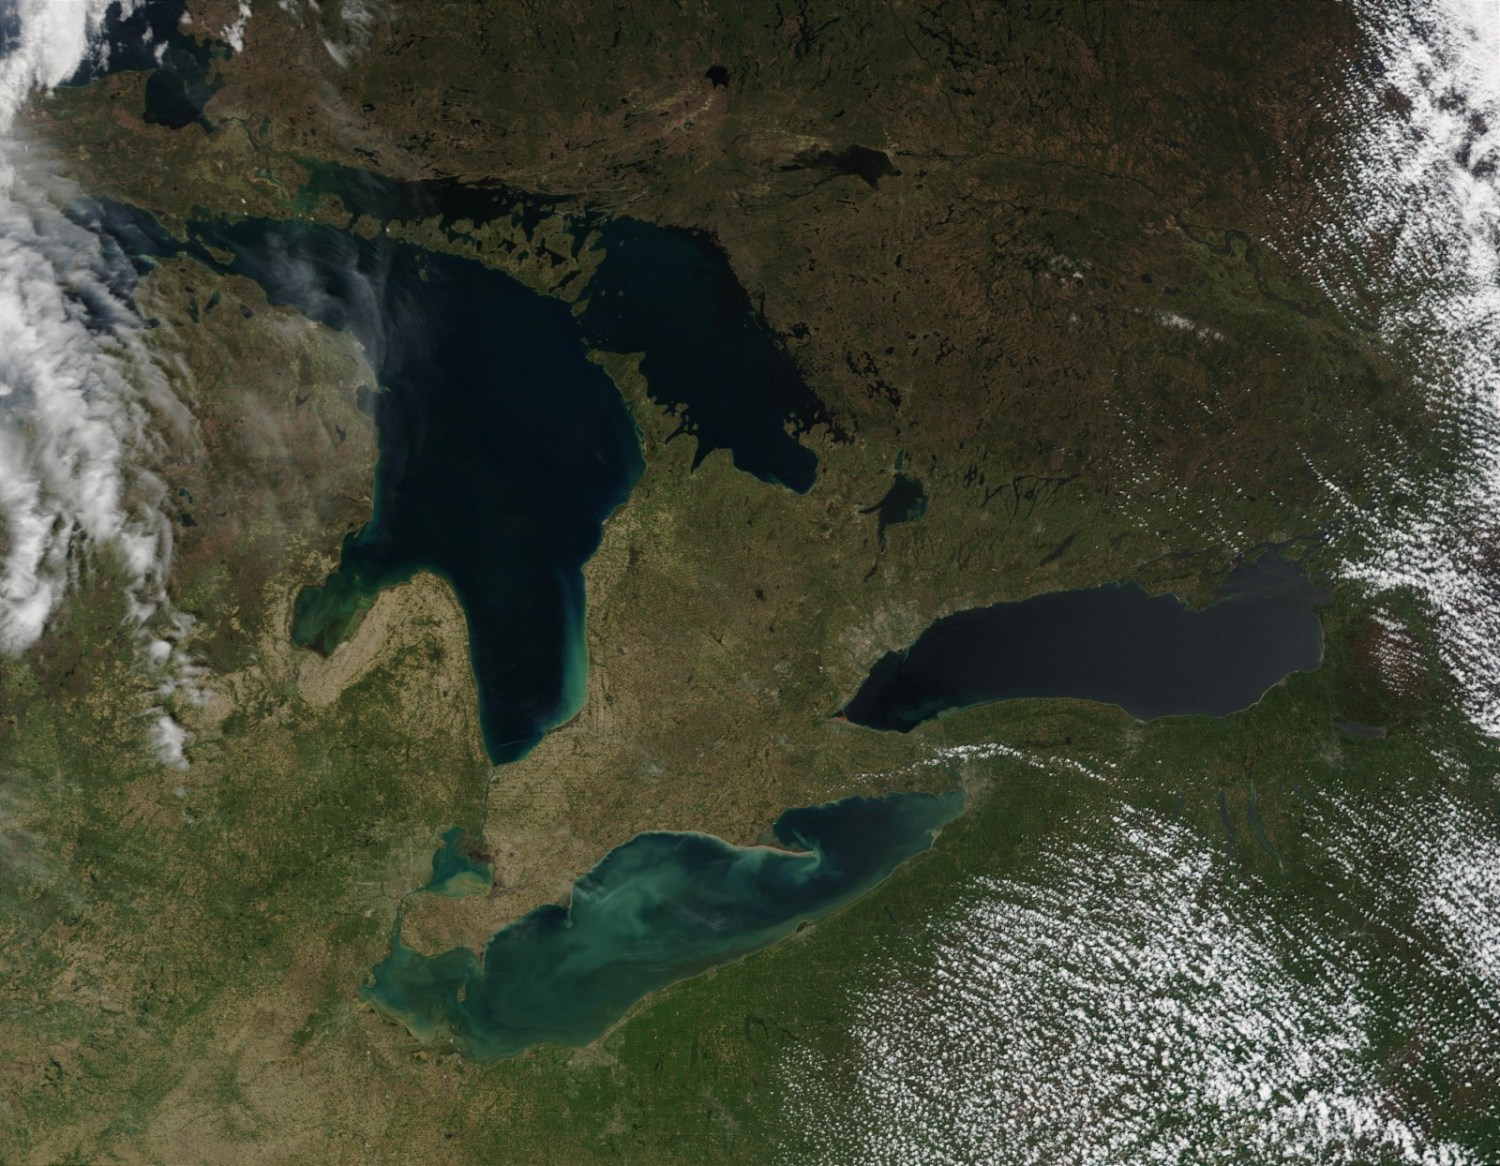 The nine aquaculture facilities in the Ontario waters of Lake Huron are the only fish farms operating in the Great Lakes. Photo courtesy MODIS / NOAA Great Lakes Environmental Research Laboratory via Flickr Creative Commons